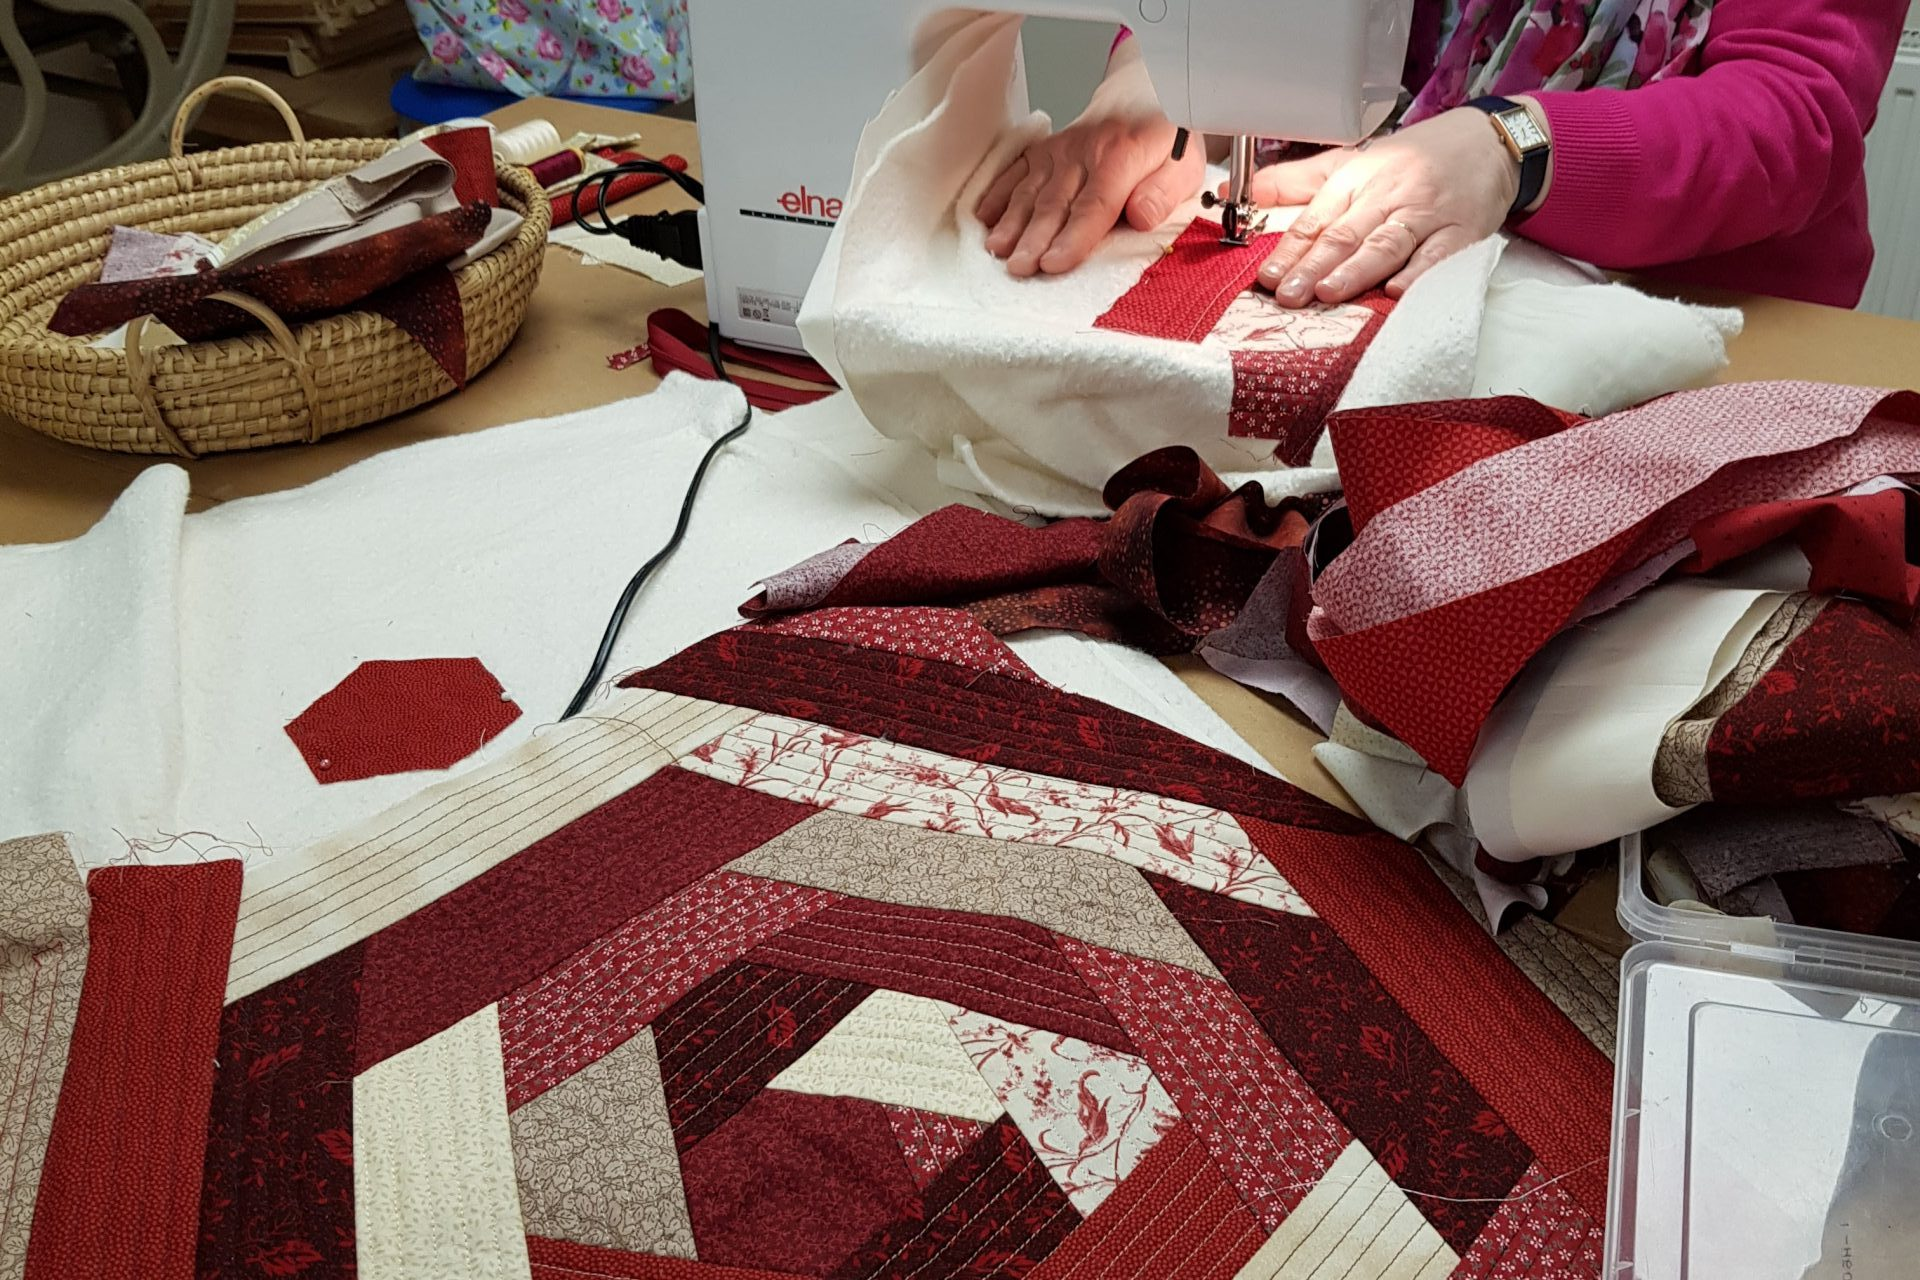 Learn to sew, Patchwork & Quilting, sewing machine, embroidery courses